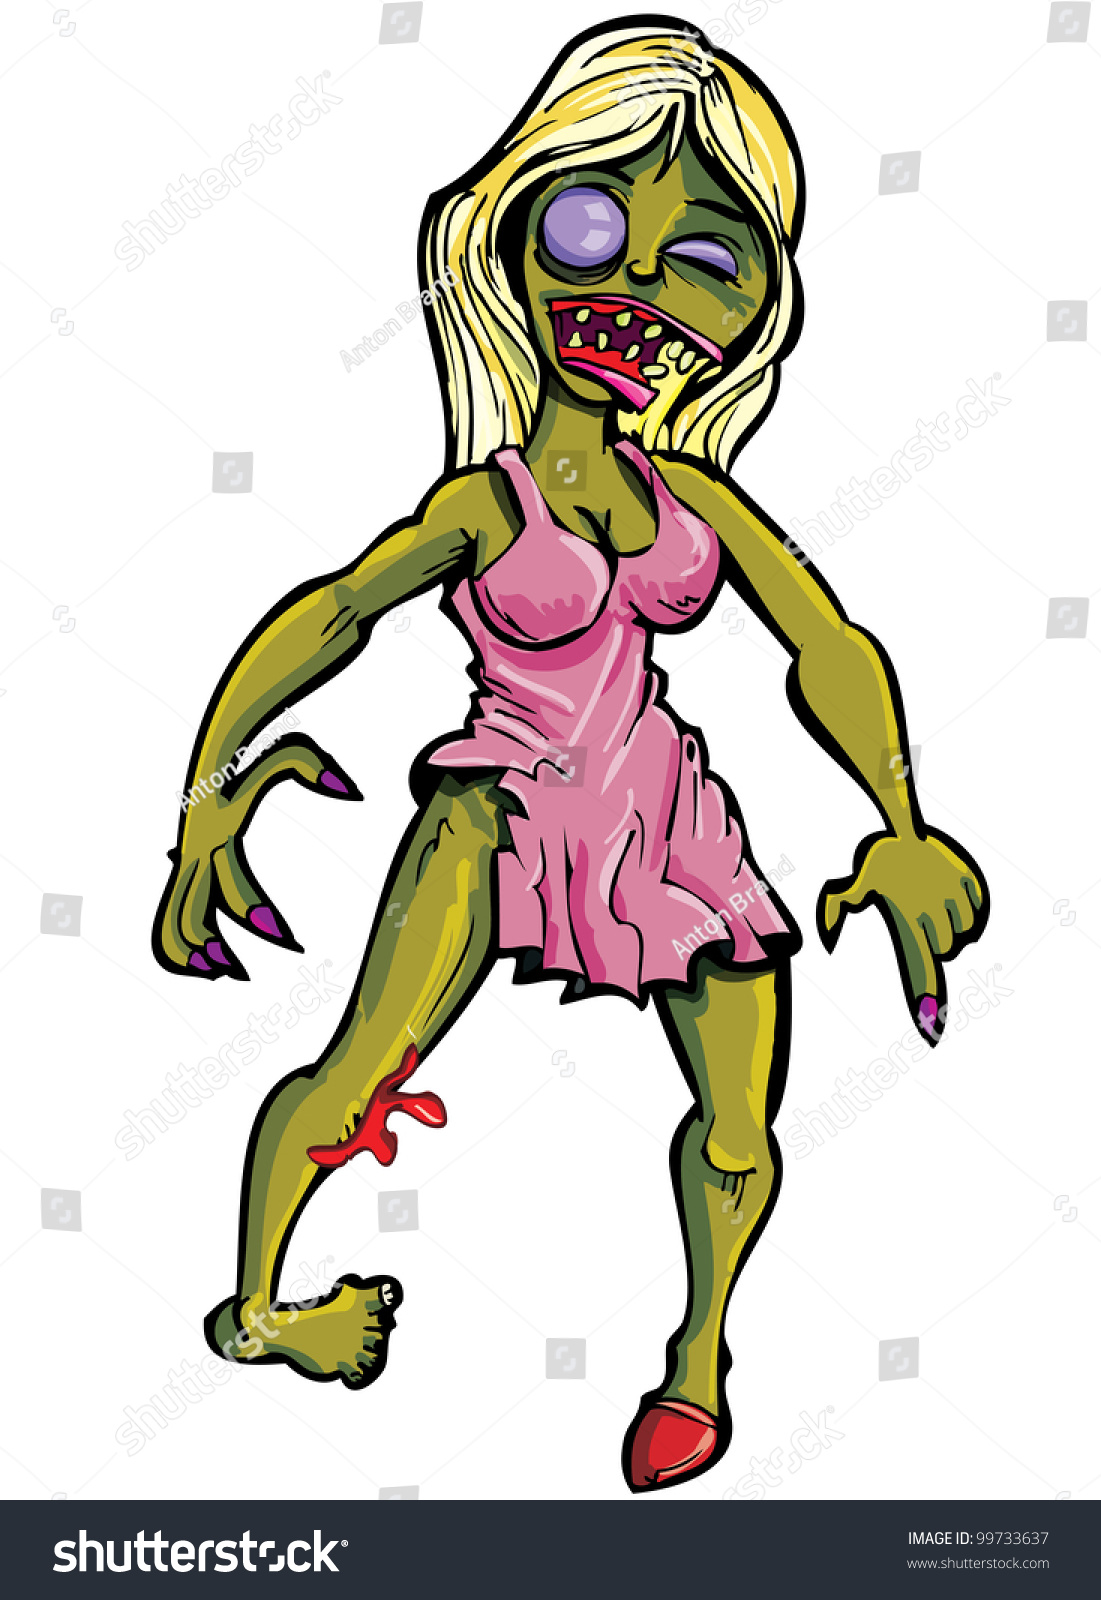 Cartoon zombie woman hardcore thumbs